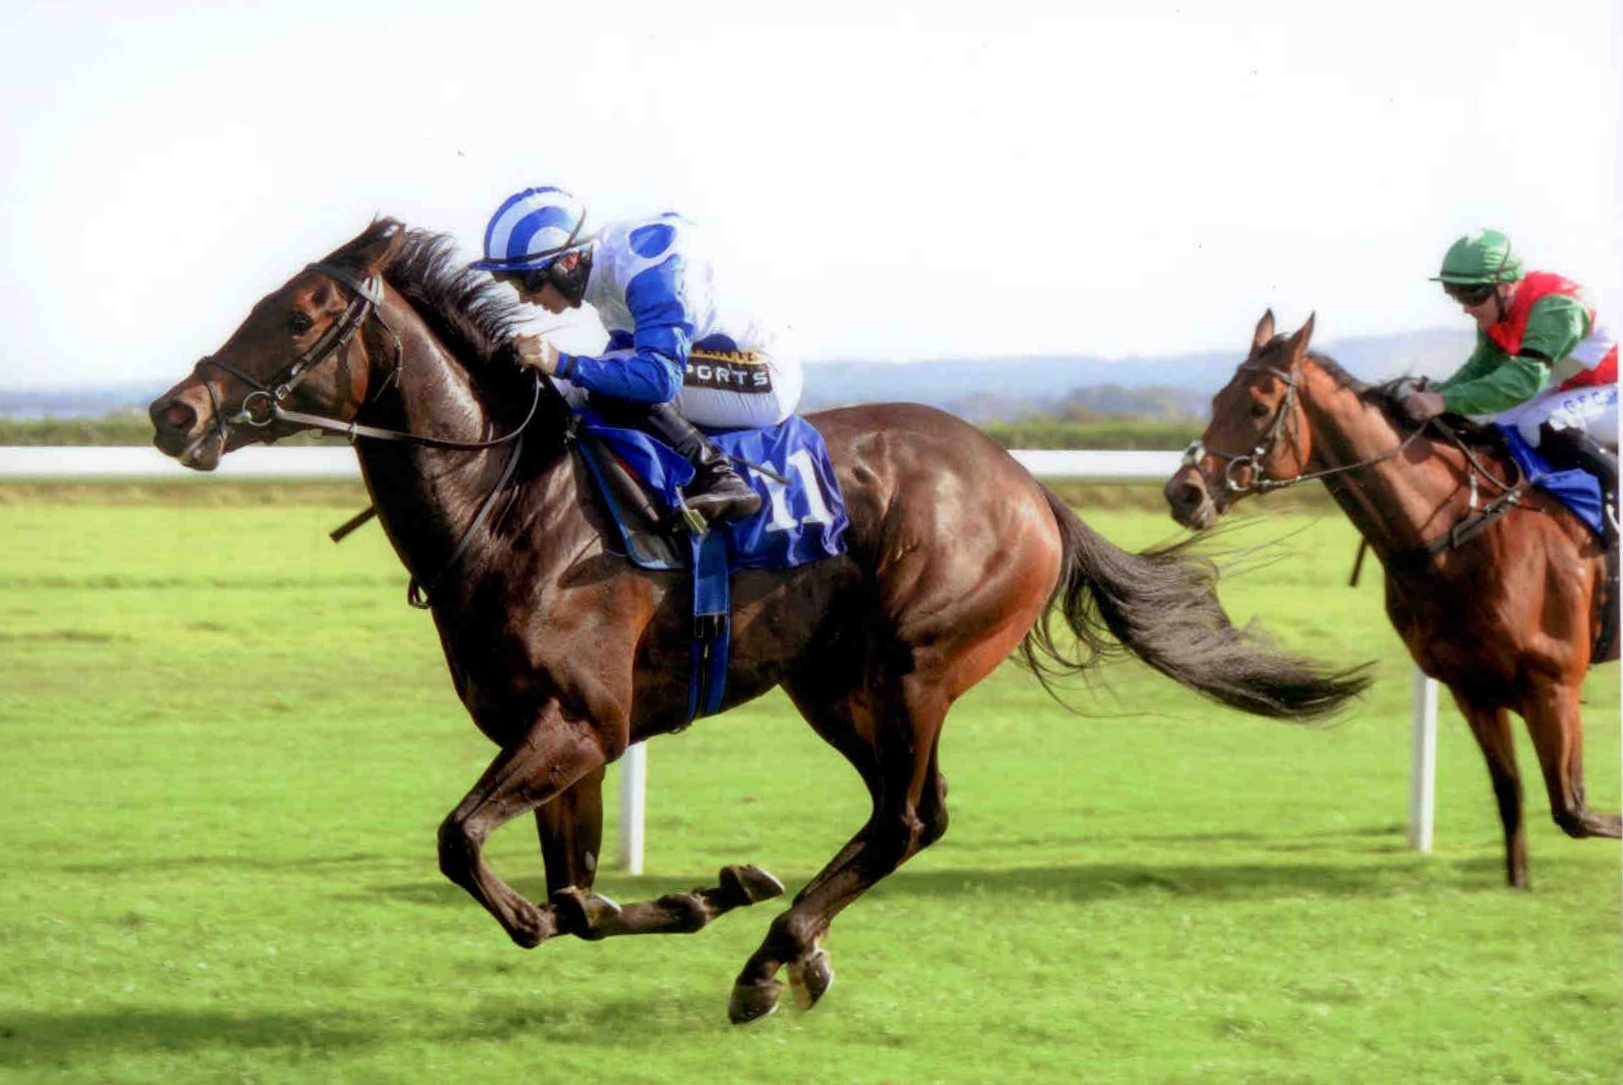 CAPE AQRAAN looks impressive at Roscommon on Monday 28th September 2015